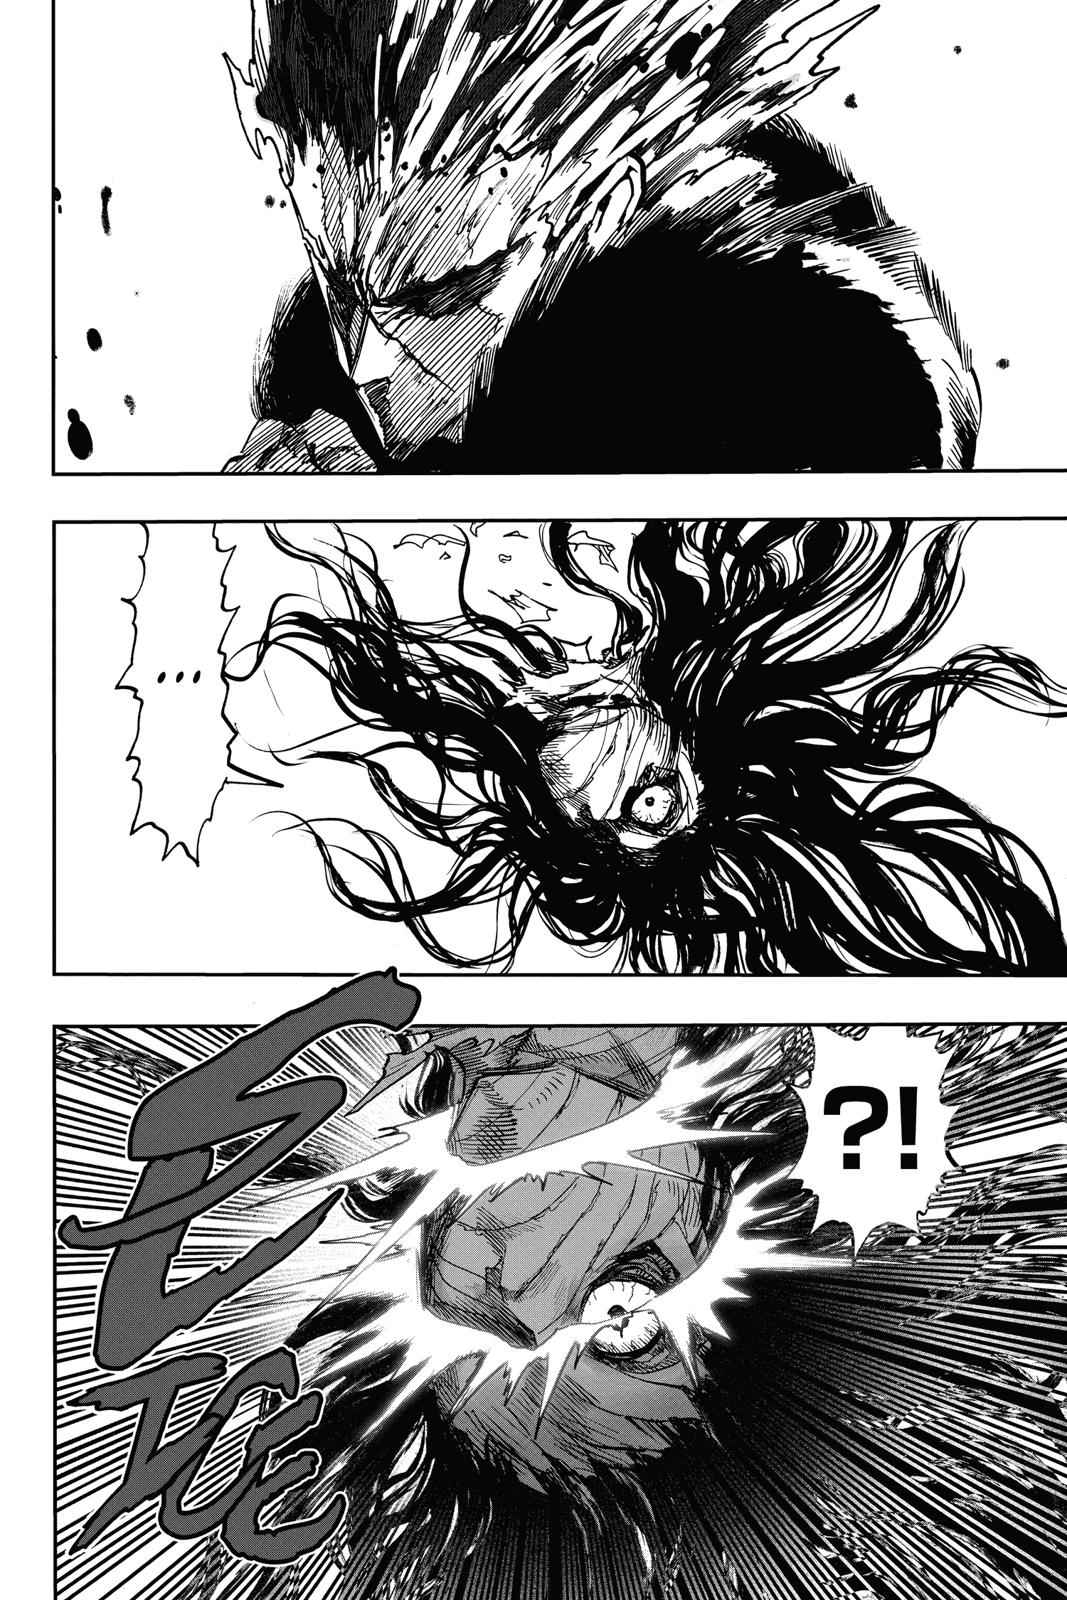 One-Punch Man Chapter 92 Page 34